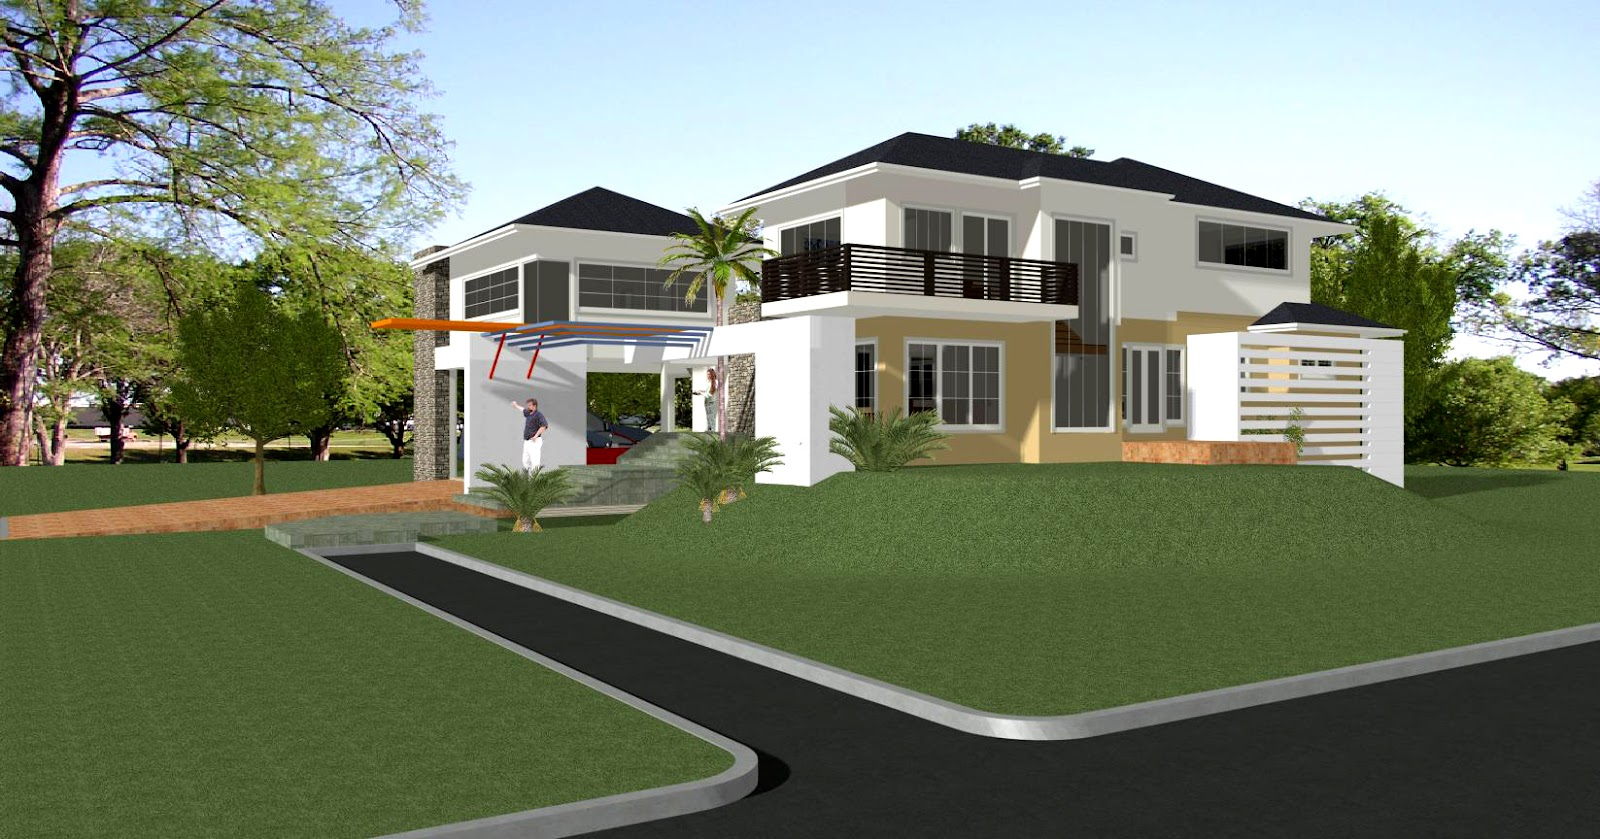 House designs in the philippines in iloilo by erecre group for New home construction designs